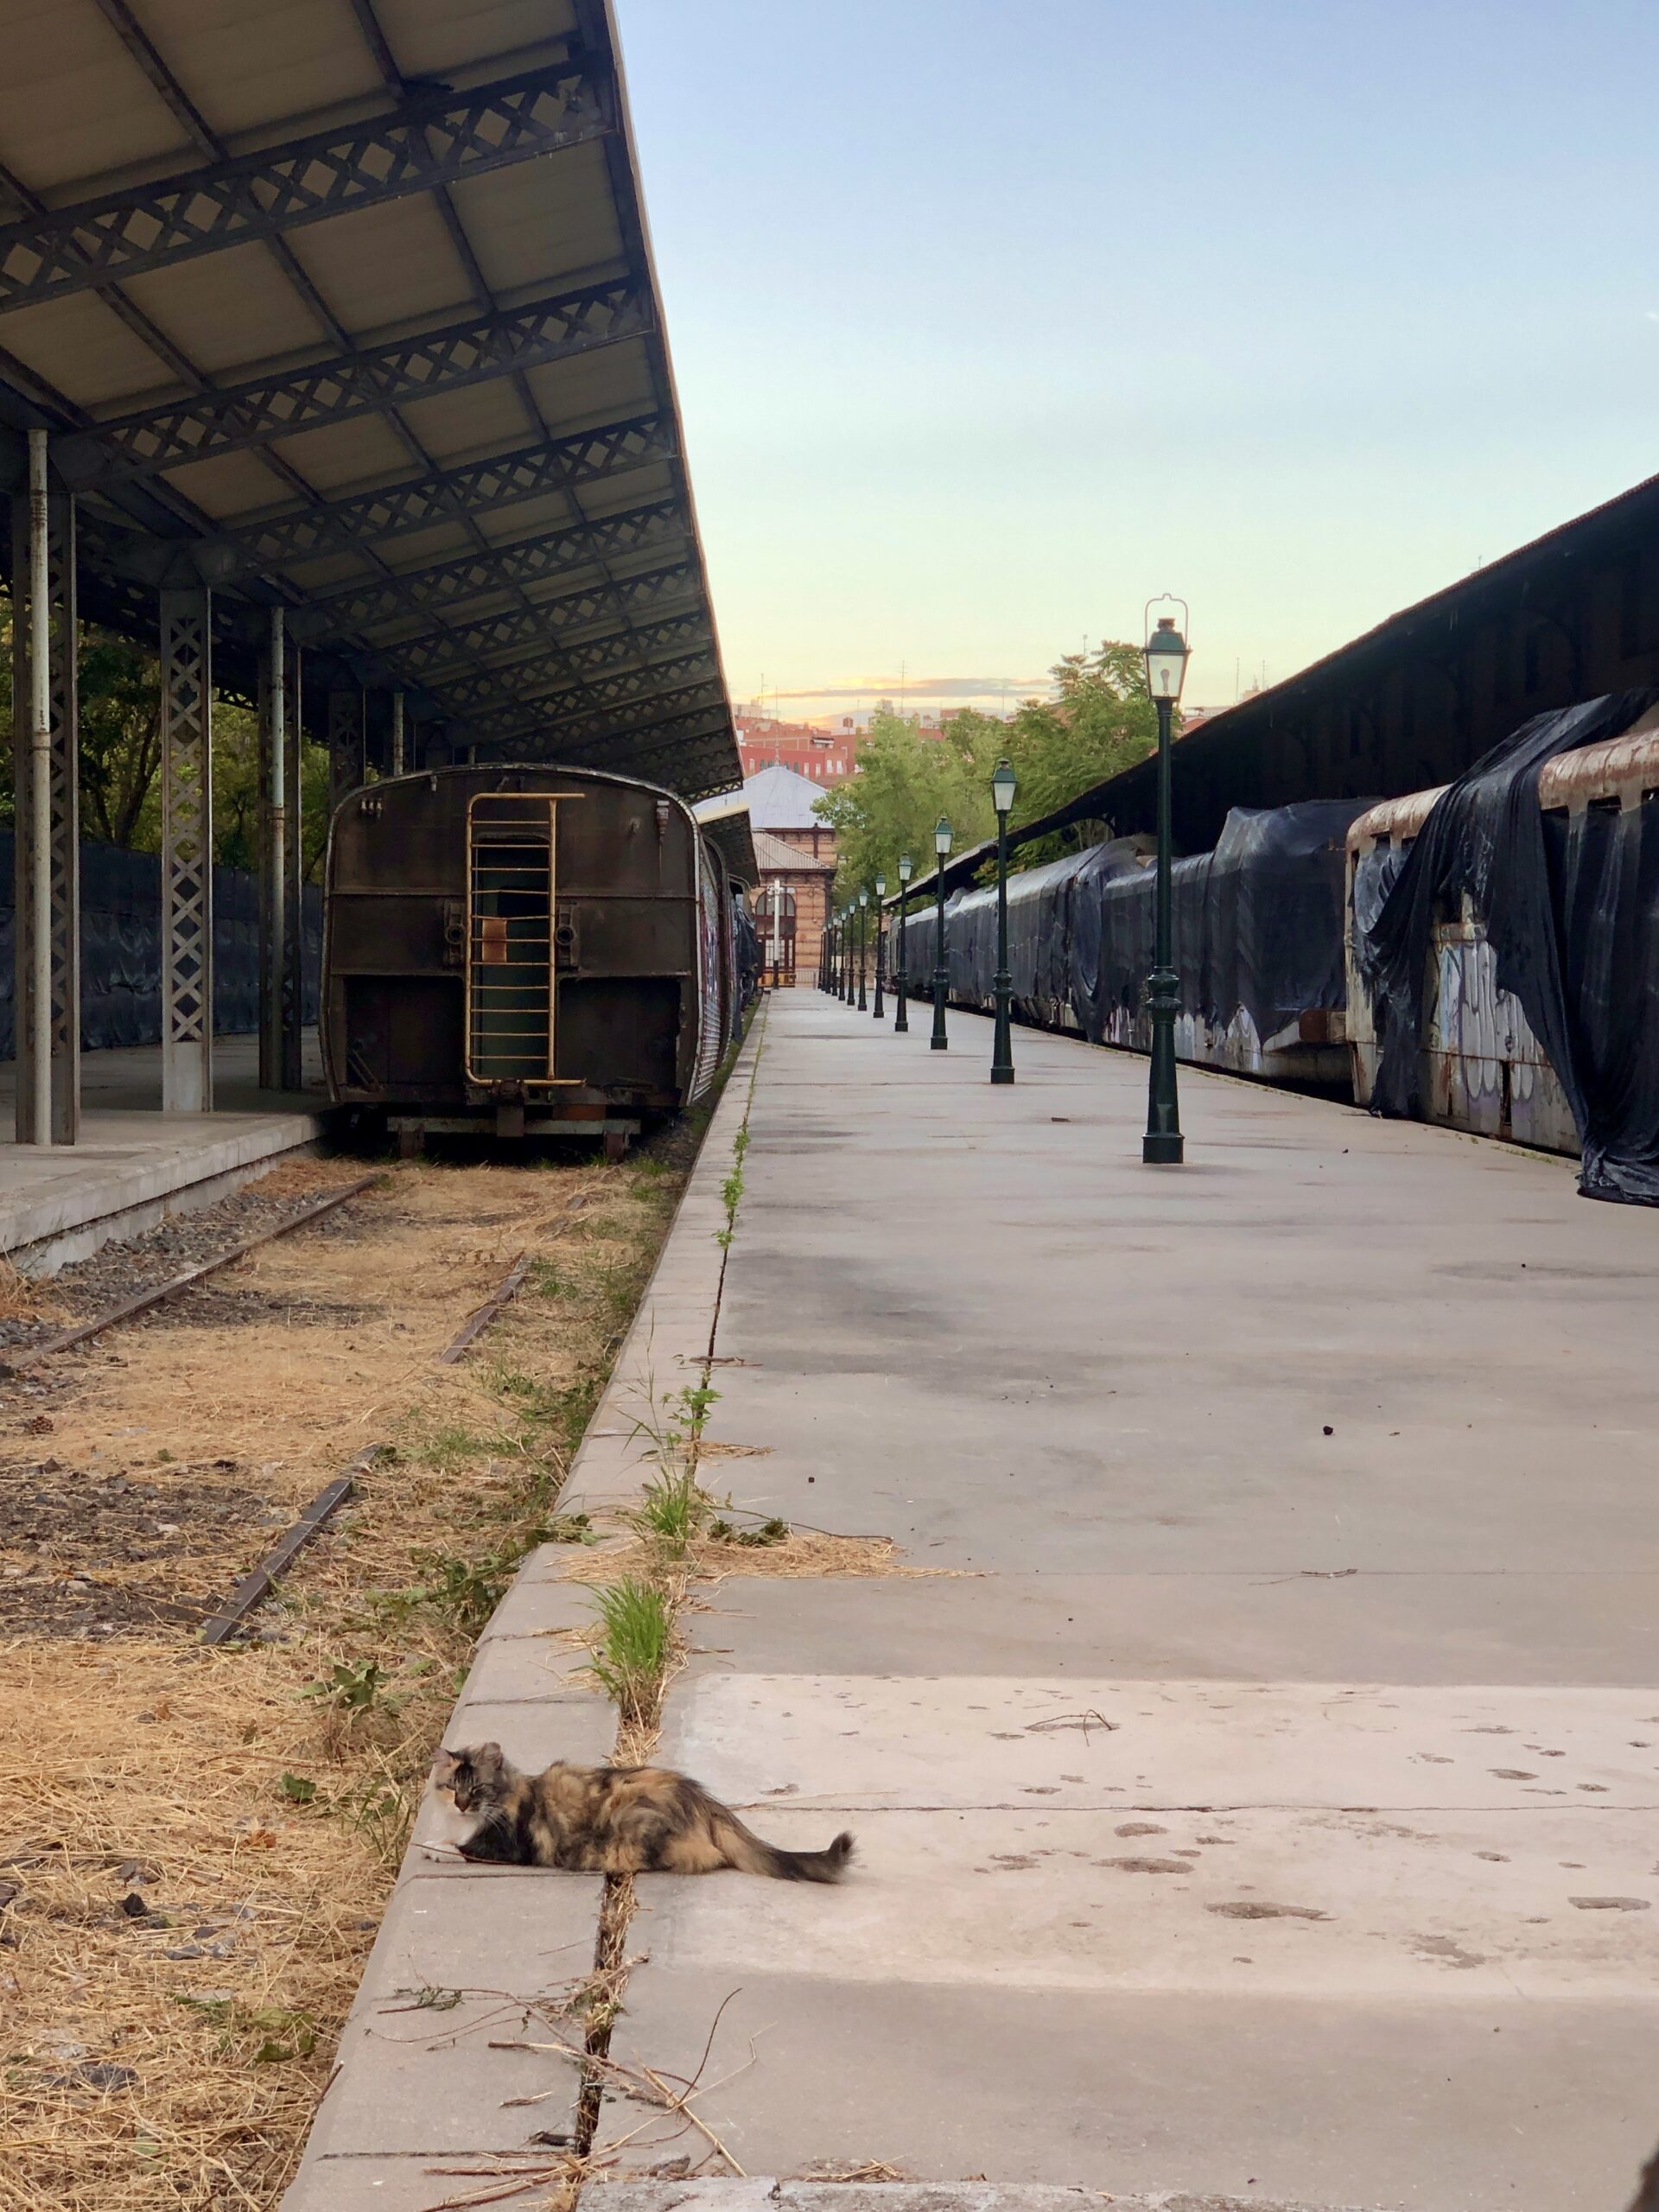 Abandoned trains in an abandoned station, with a cat in the foreground.